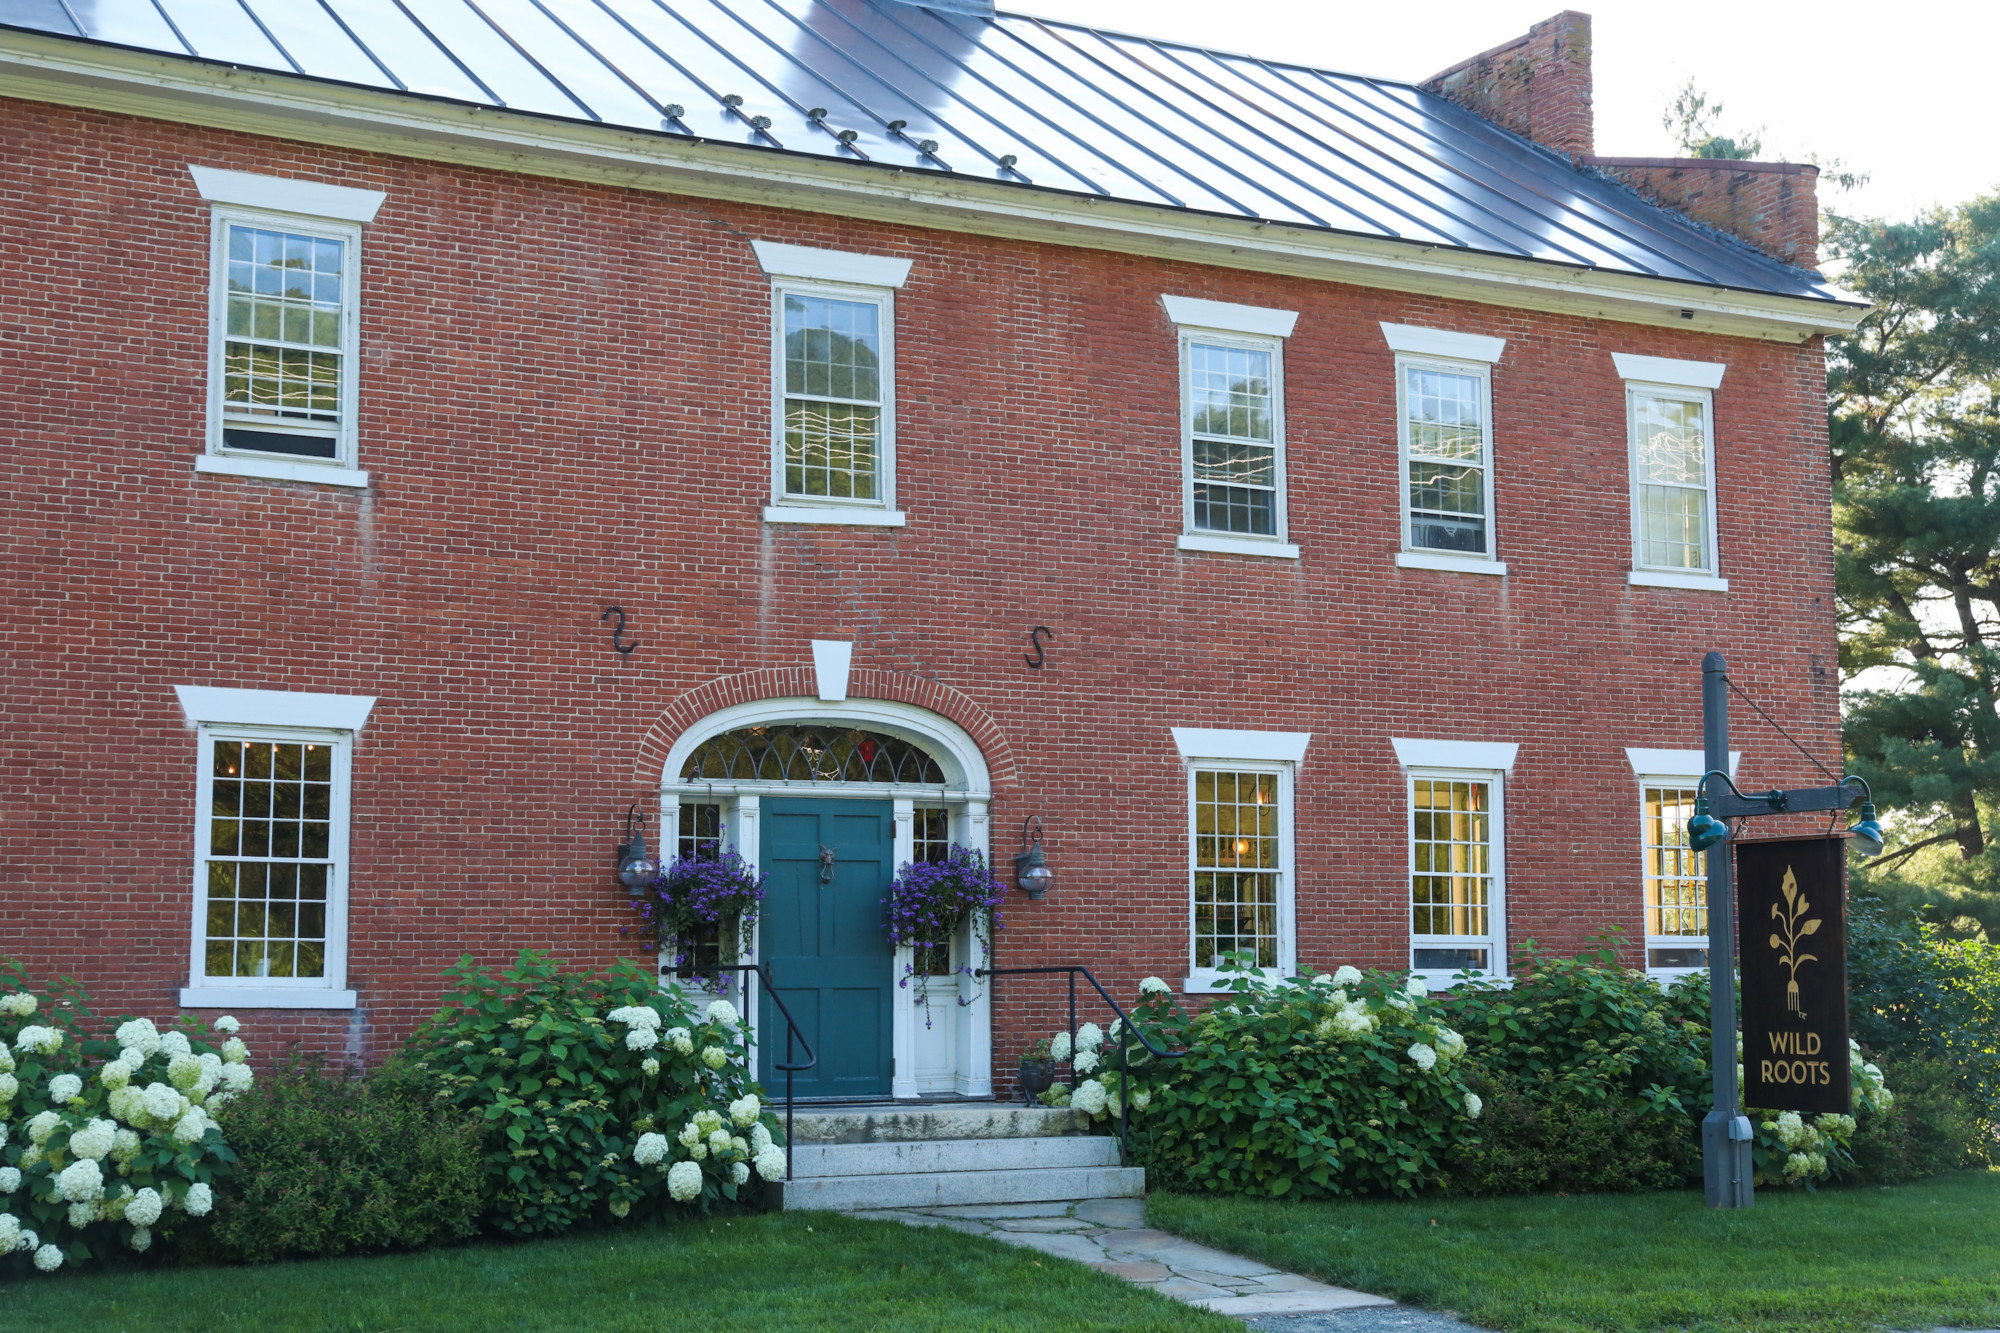 You Walk Into The Front Door Of The Large Brick Colonial, Situated Amongst  A Crowd Of Fluffy White Hydrangeas.